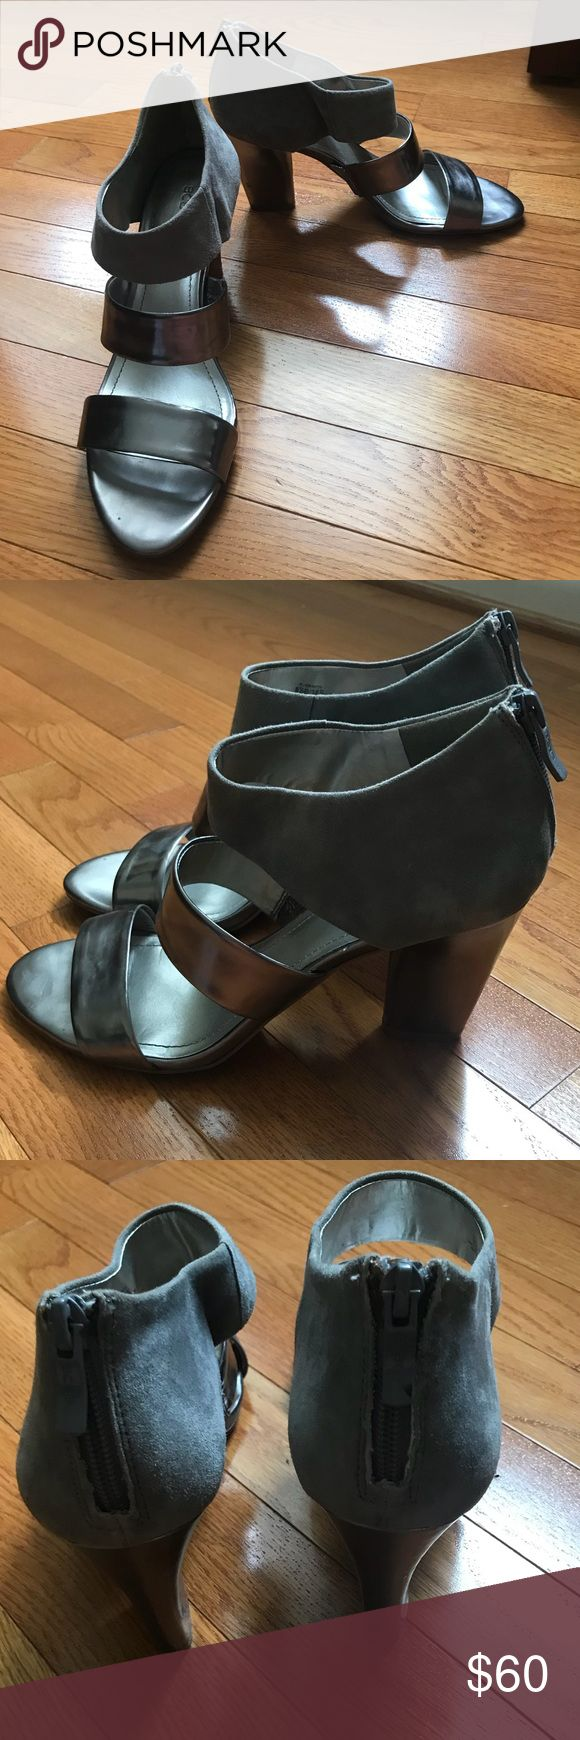 BCBGeneration gray and silver open toe heels Style is called PL-Orianthi.  Gray and silver with suede and metallic leather strappy heels.  Minor scuff pictured on heels.  Zipper in the back makes it easier to put the shoes on.   Heel is 3 inches.  Beautiful heels to wear for a formal event.  Size 8.5 BCBGeneration Shoes Heels